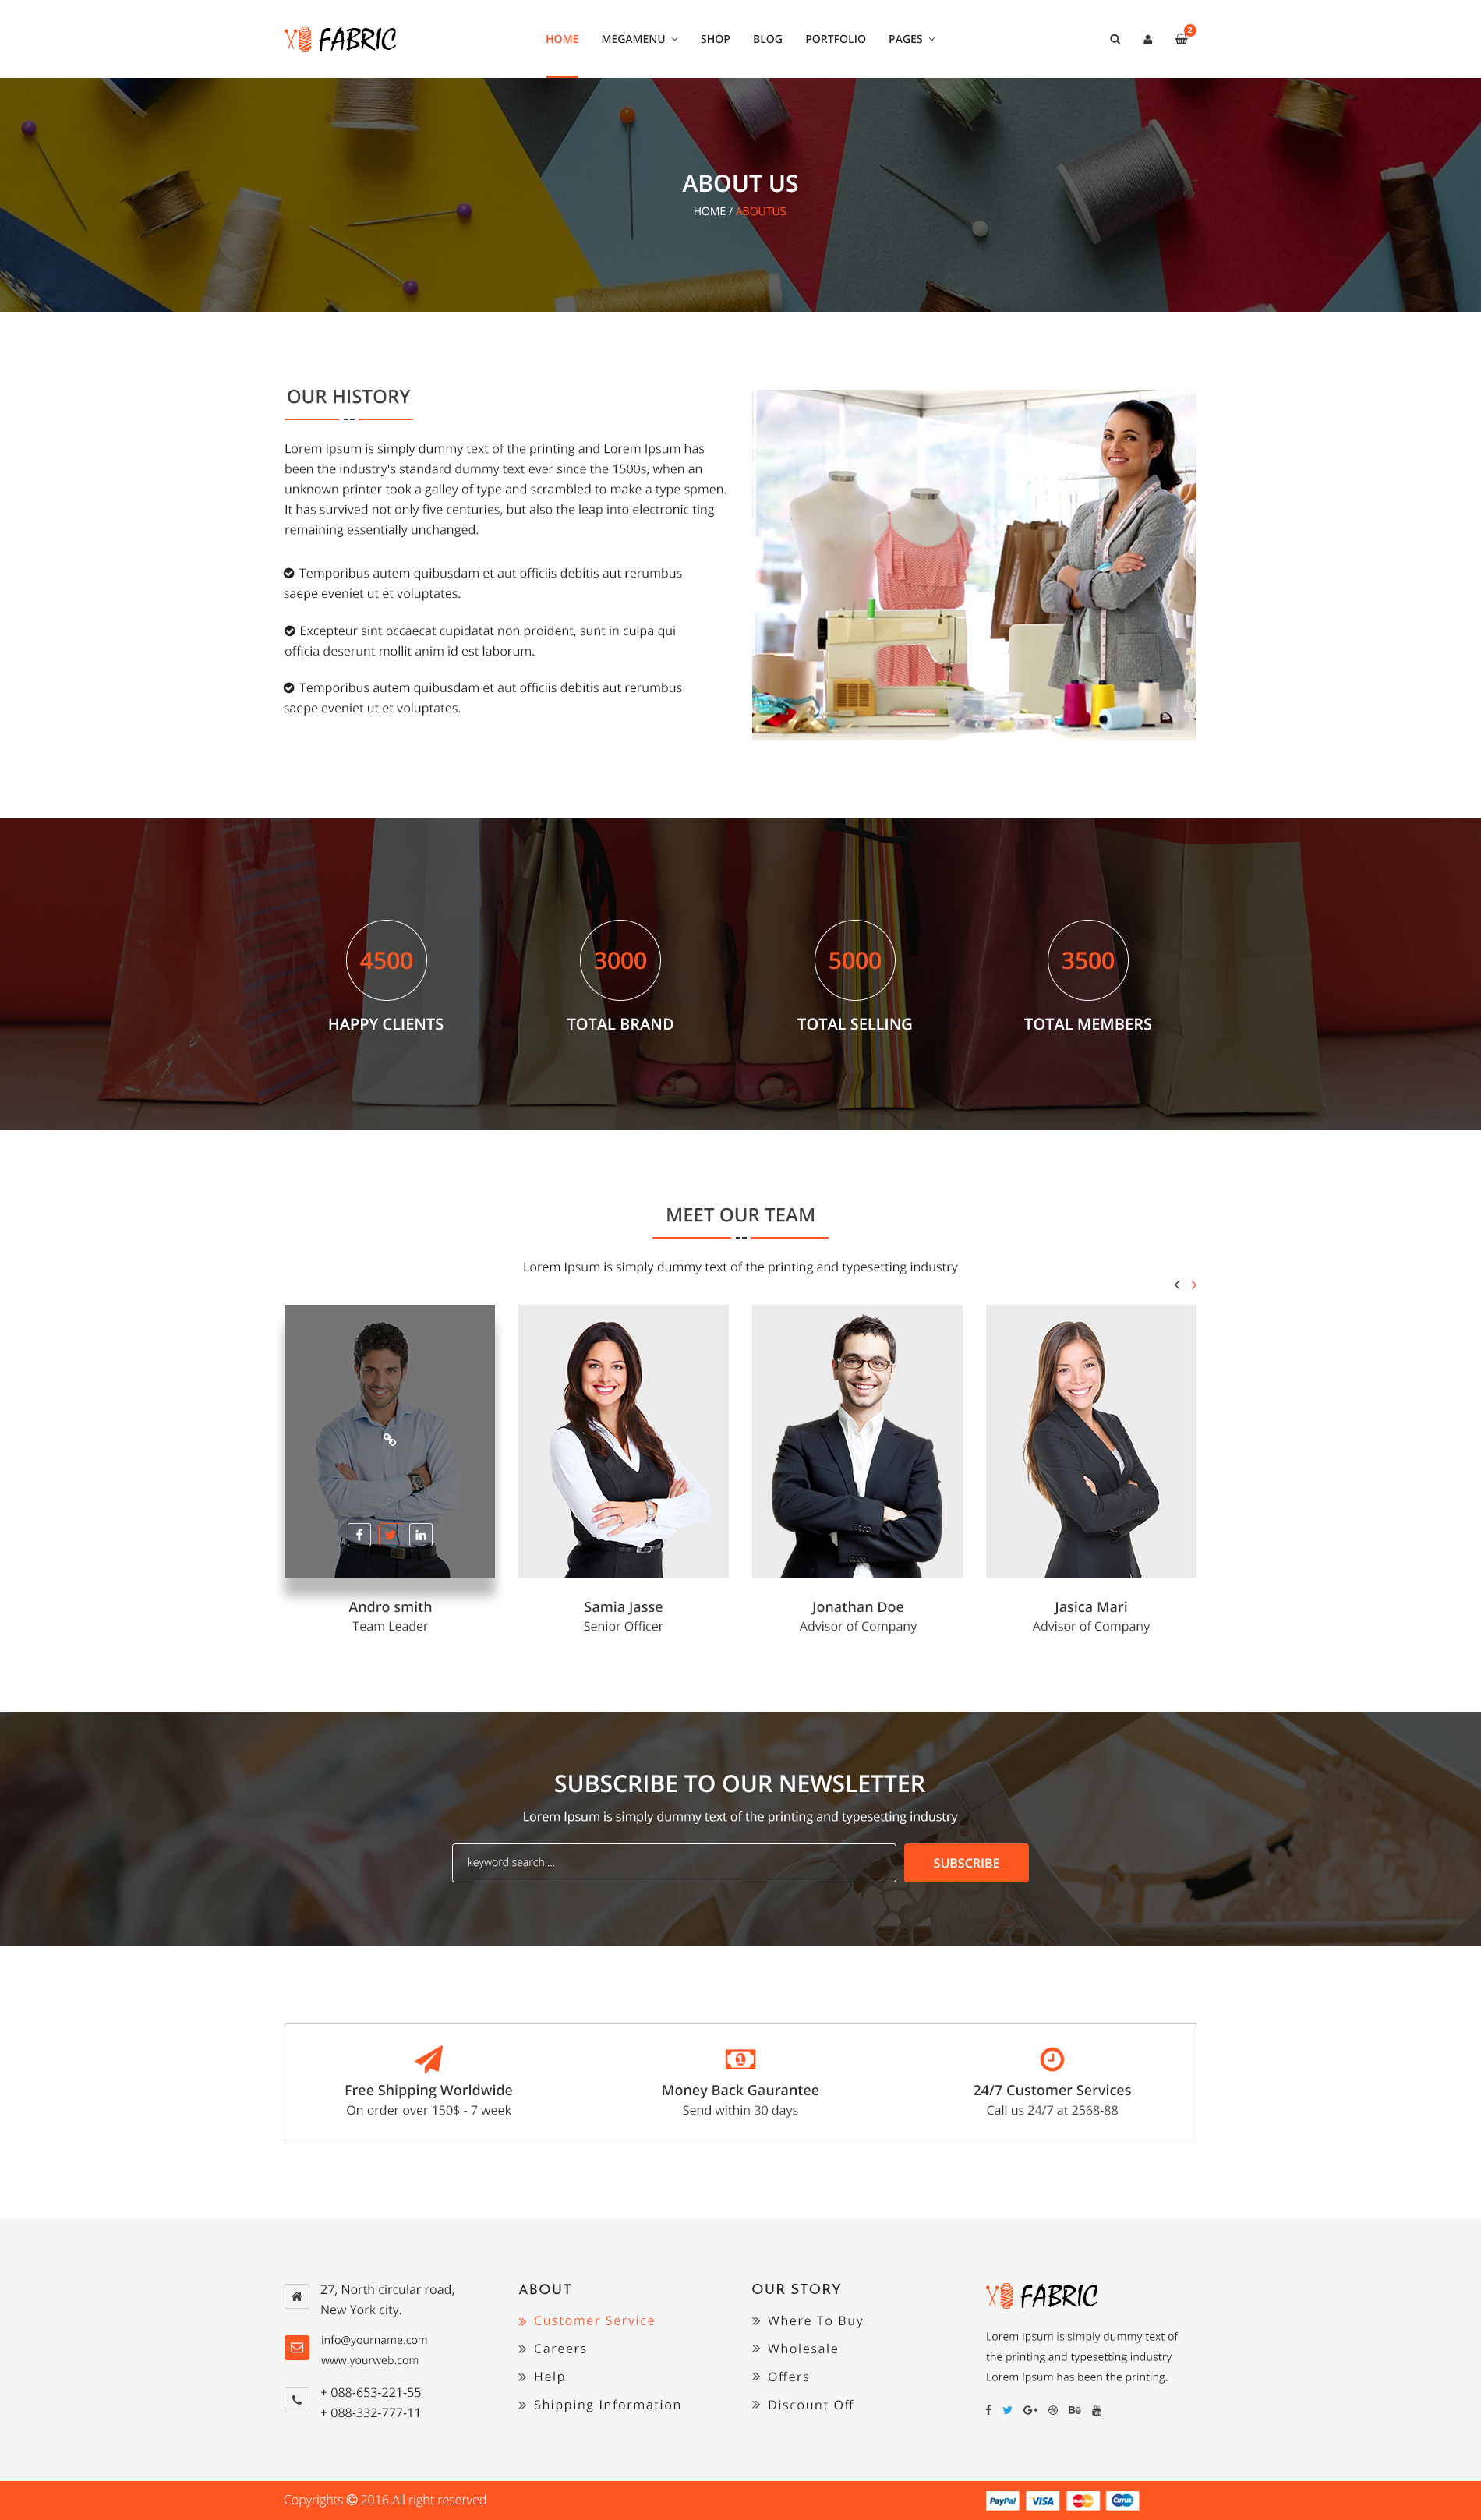 Fabric e commerce psd template by bootscore themeforest 04 about us pageg pronofoot35fo Images